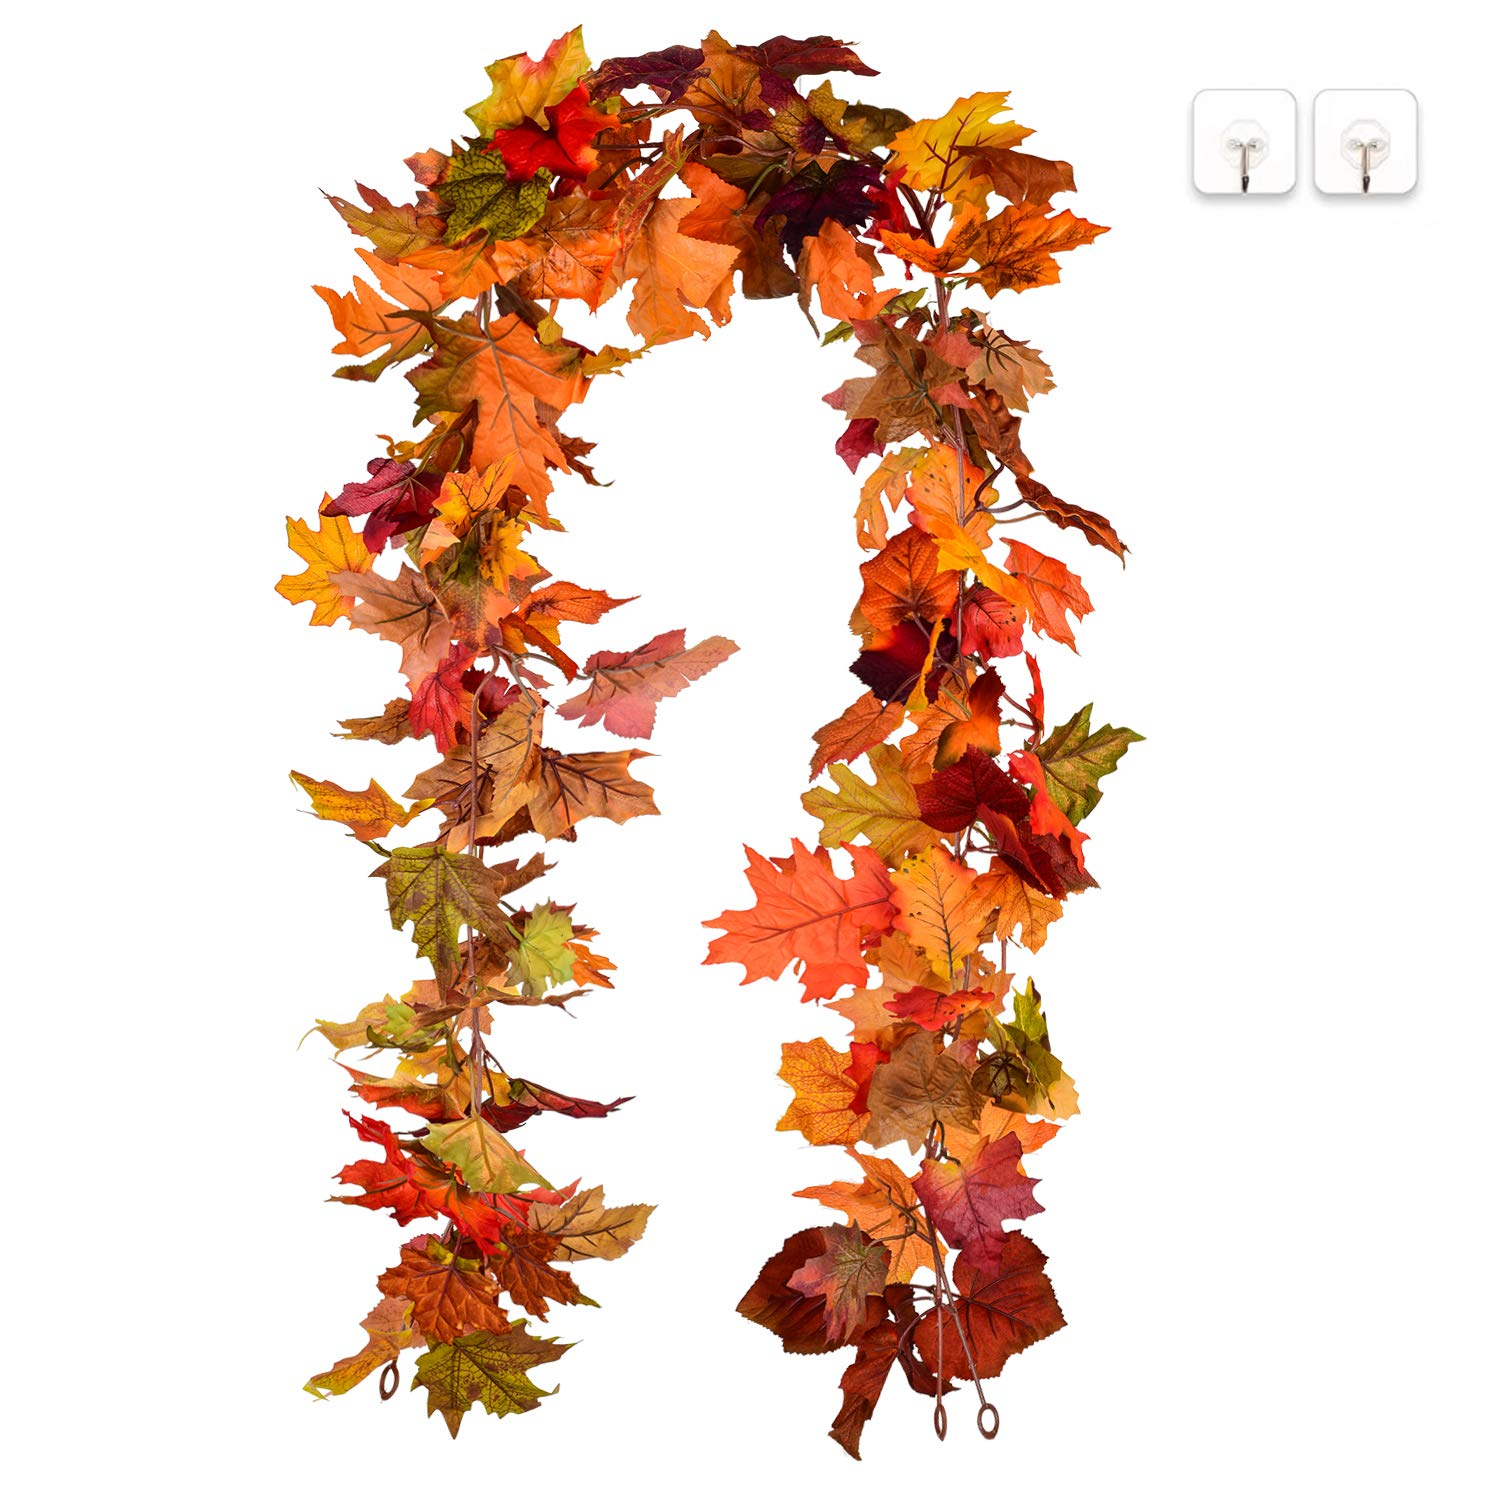 Lvydec 2 Pack Fall Maple Garland - 5.9ft/Piece Artificial Fall Foliage Garland Colorful Autumn Decor for Home Wedding Party (Mixed Color)